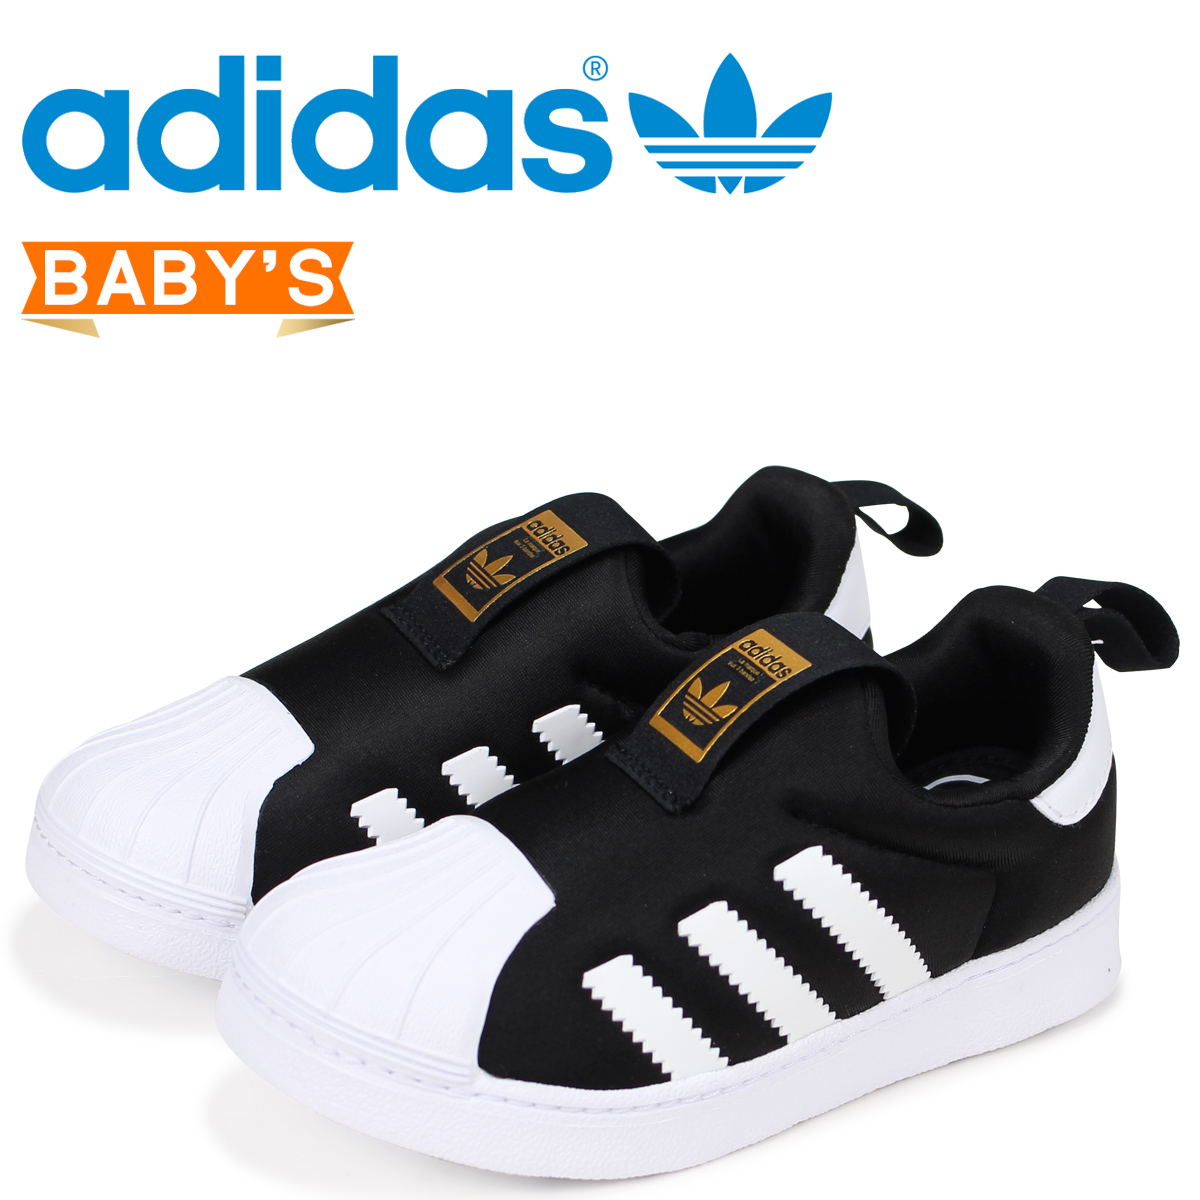 factory authentic d25ab 30591 adidas Originals superstar Adidas originals kids baby sneakers SUPERSTAR  360 I S82711 black black [8/16 reentry load]